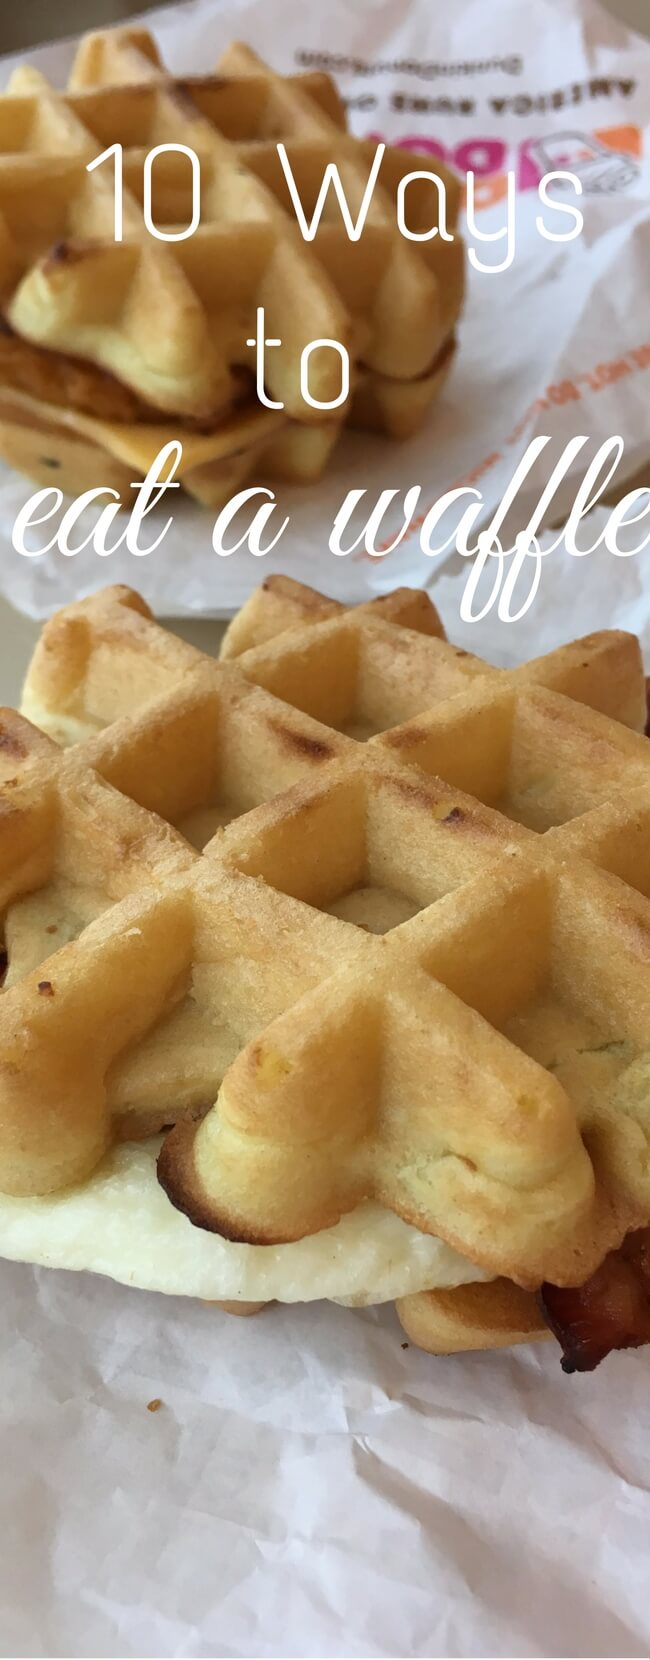 10 Awesome Ways to Eat a Waffle via @clarkscondensed